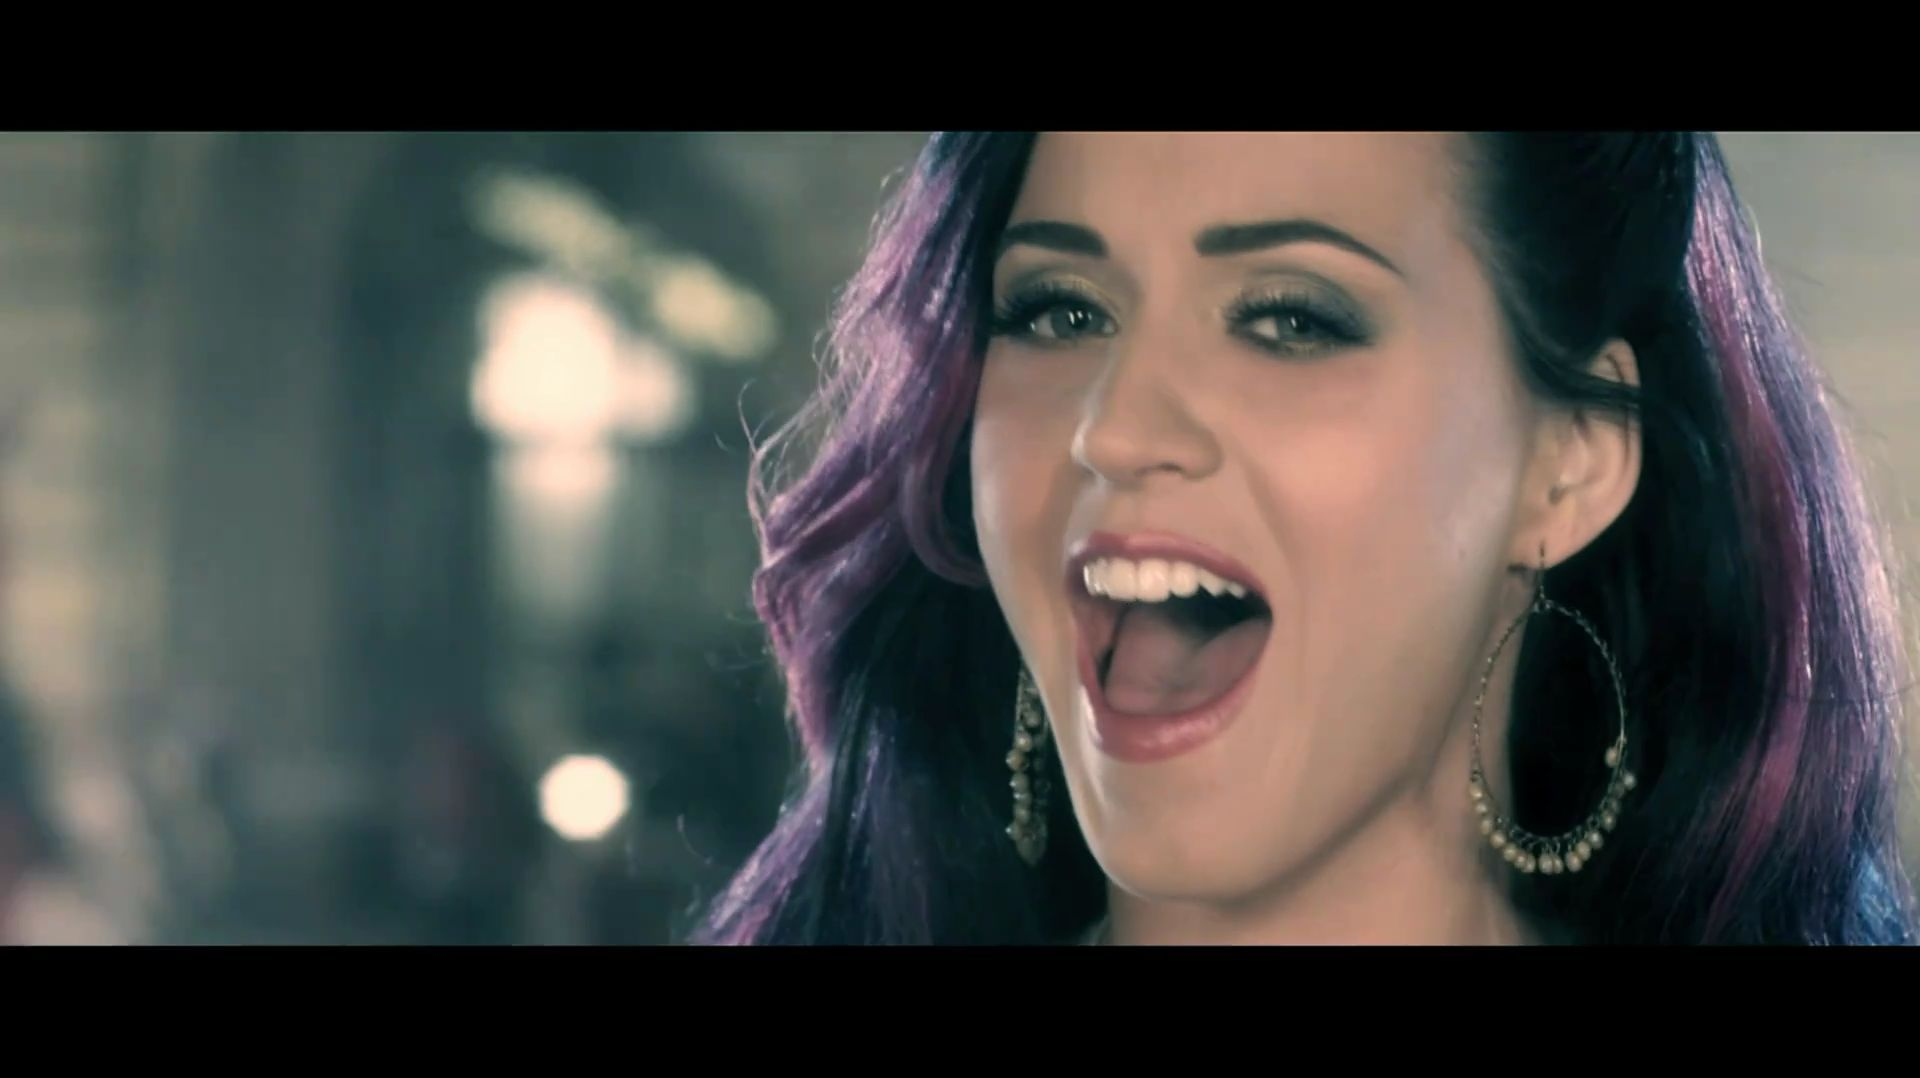 Firework Music Video - Katy Perry - Screencaps - Katy ... Katy Perry Songs